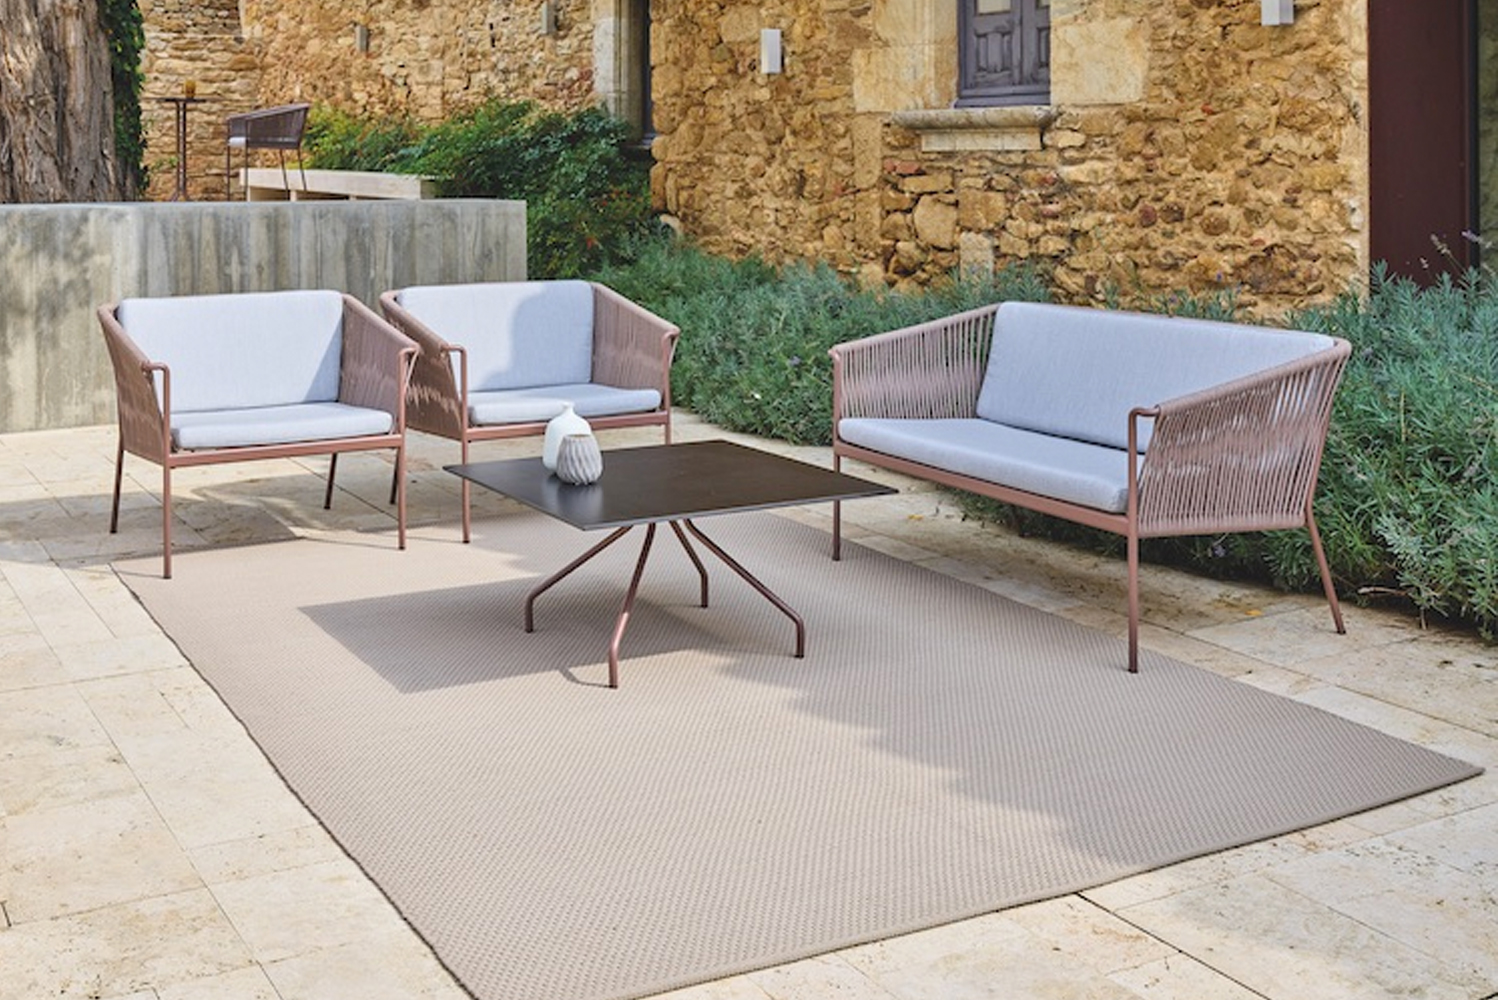 Weave is a collection of outdoor furniture.